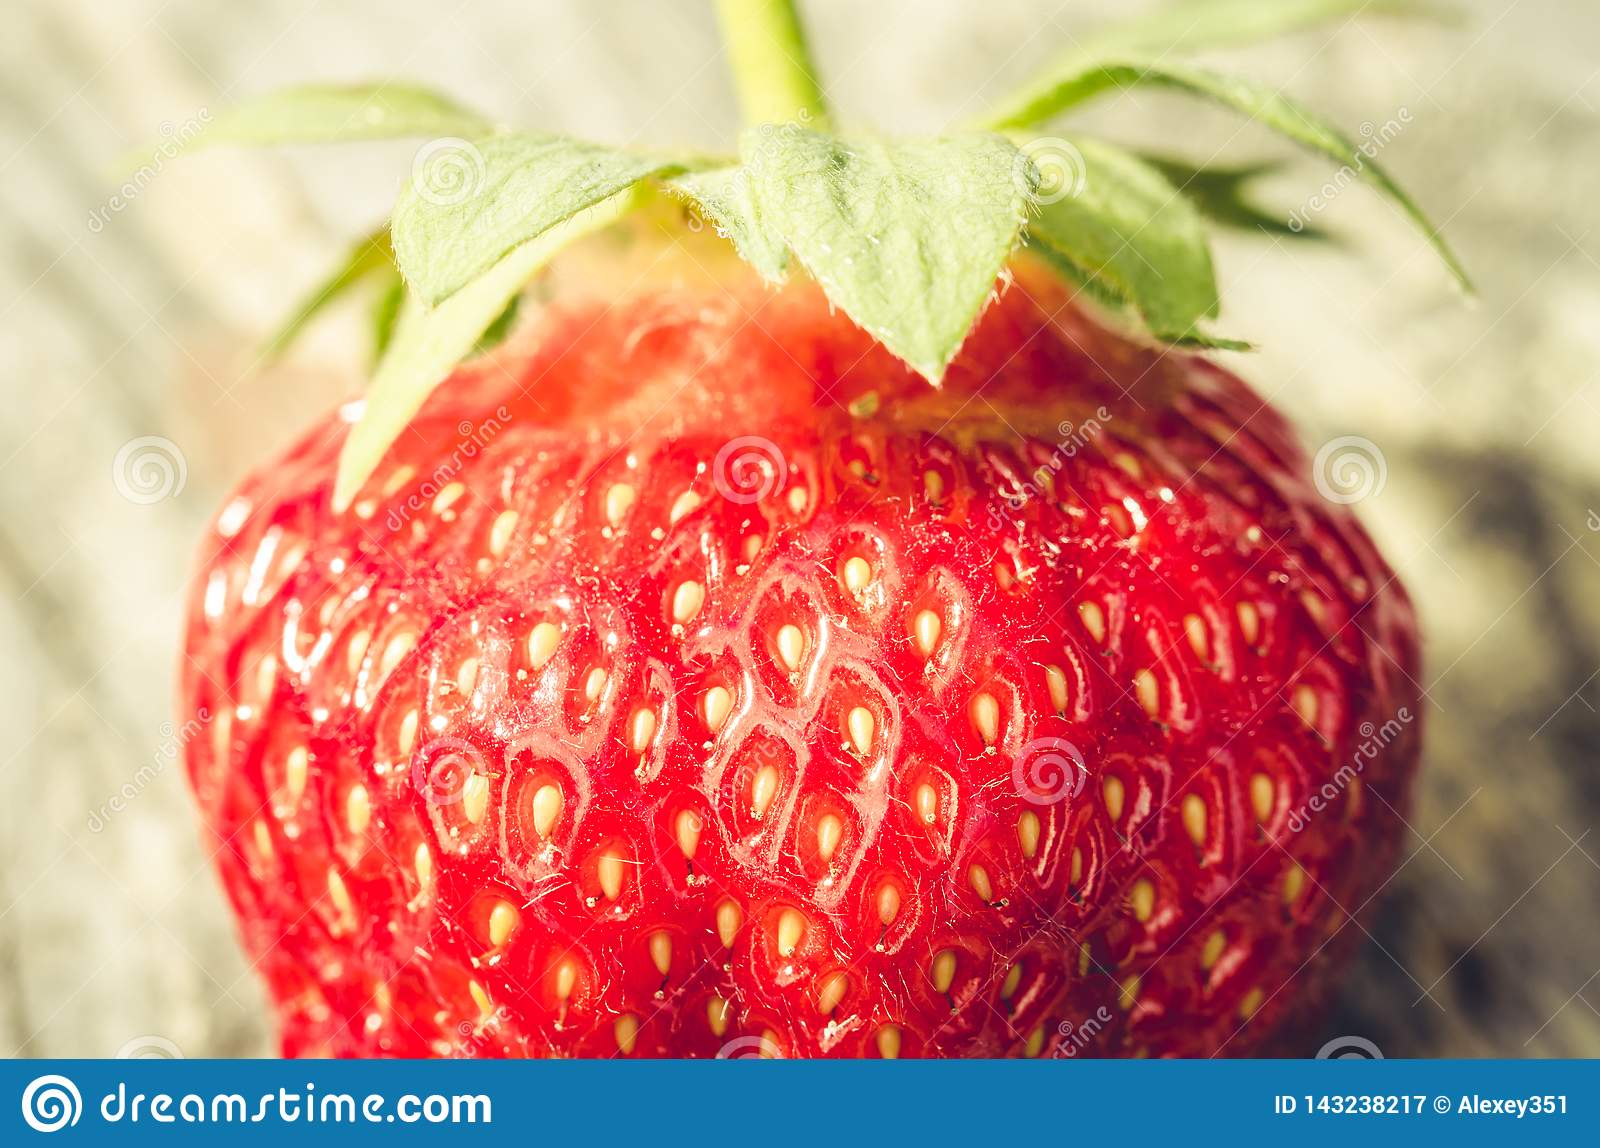 Fresh ripe juicy strawberry/fresh ripe juicy strawberry close up. Gourmet food